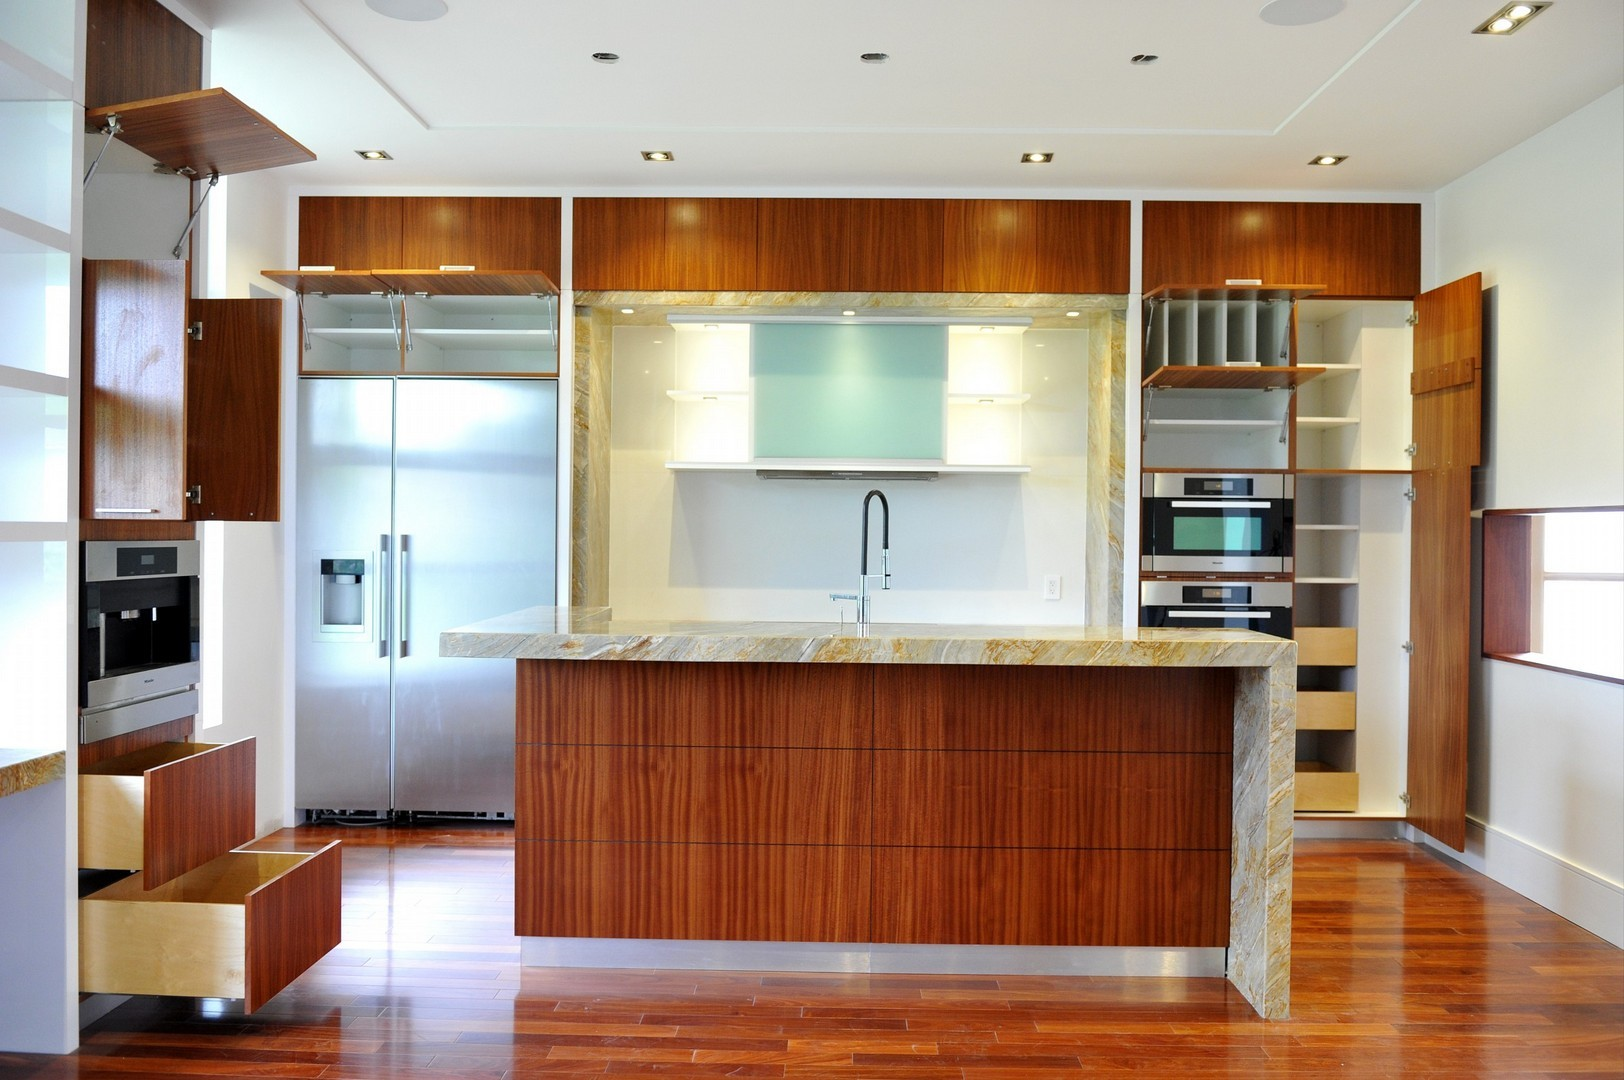 kitchen_00009